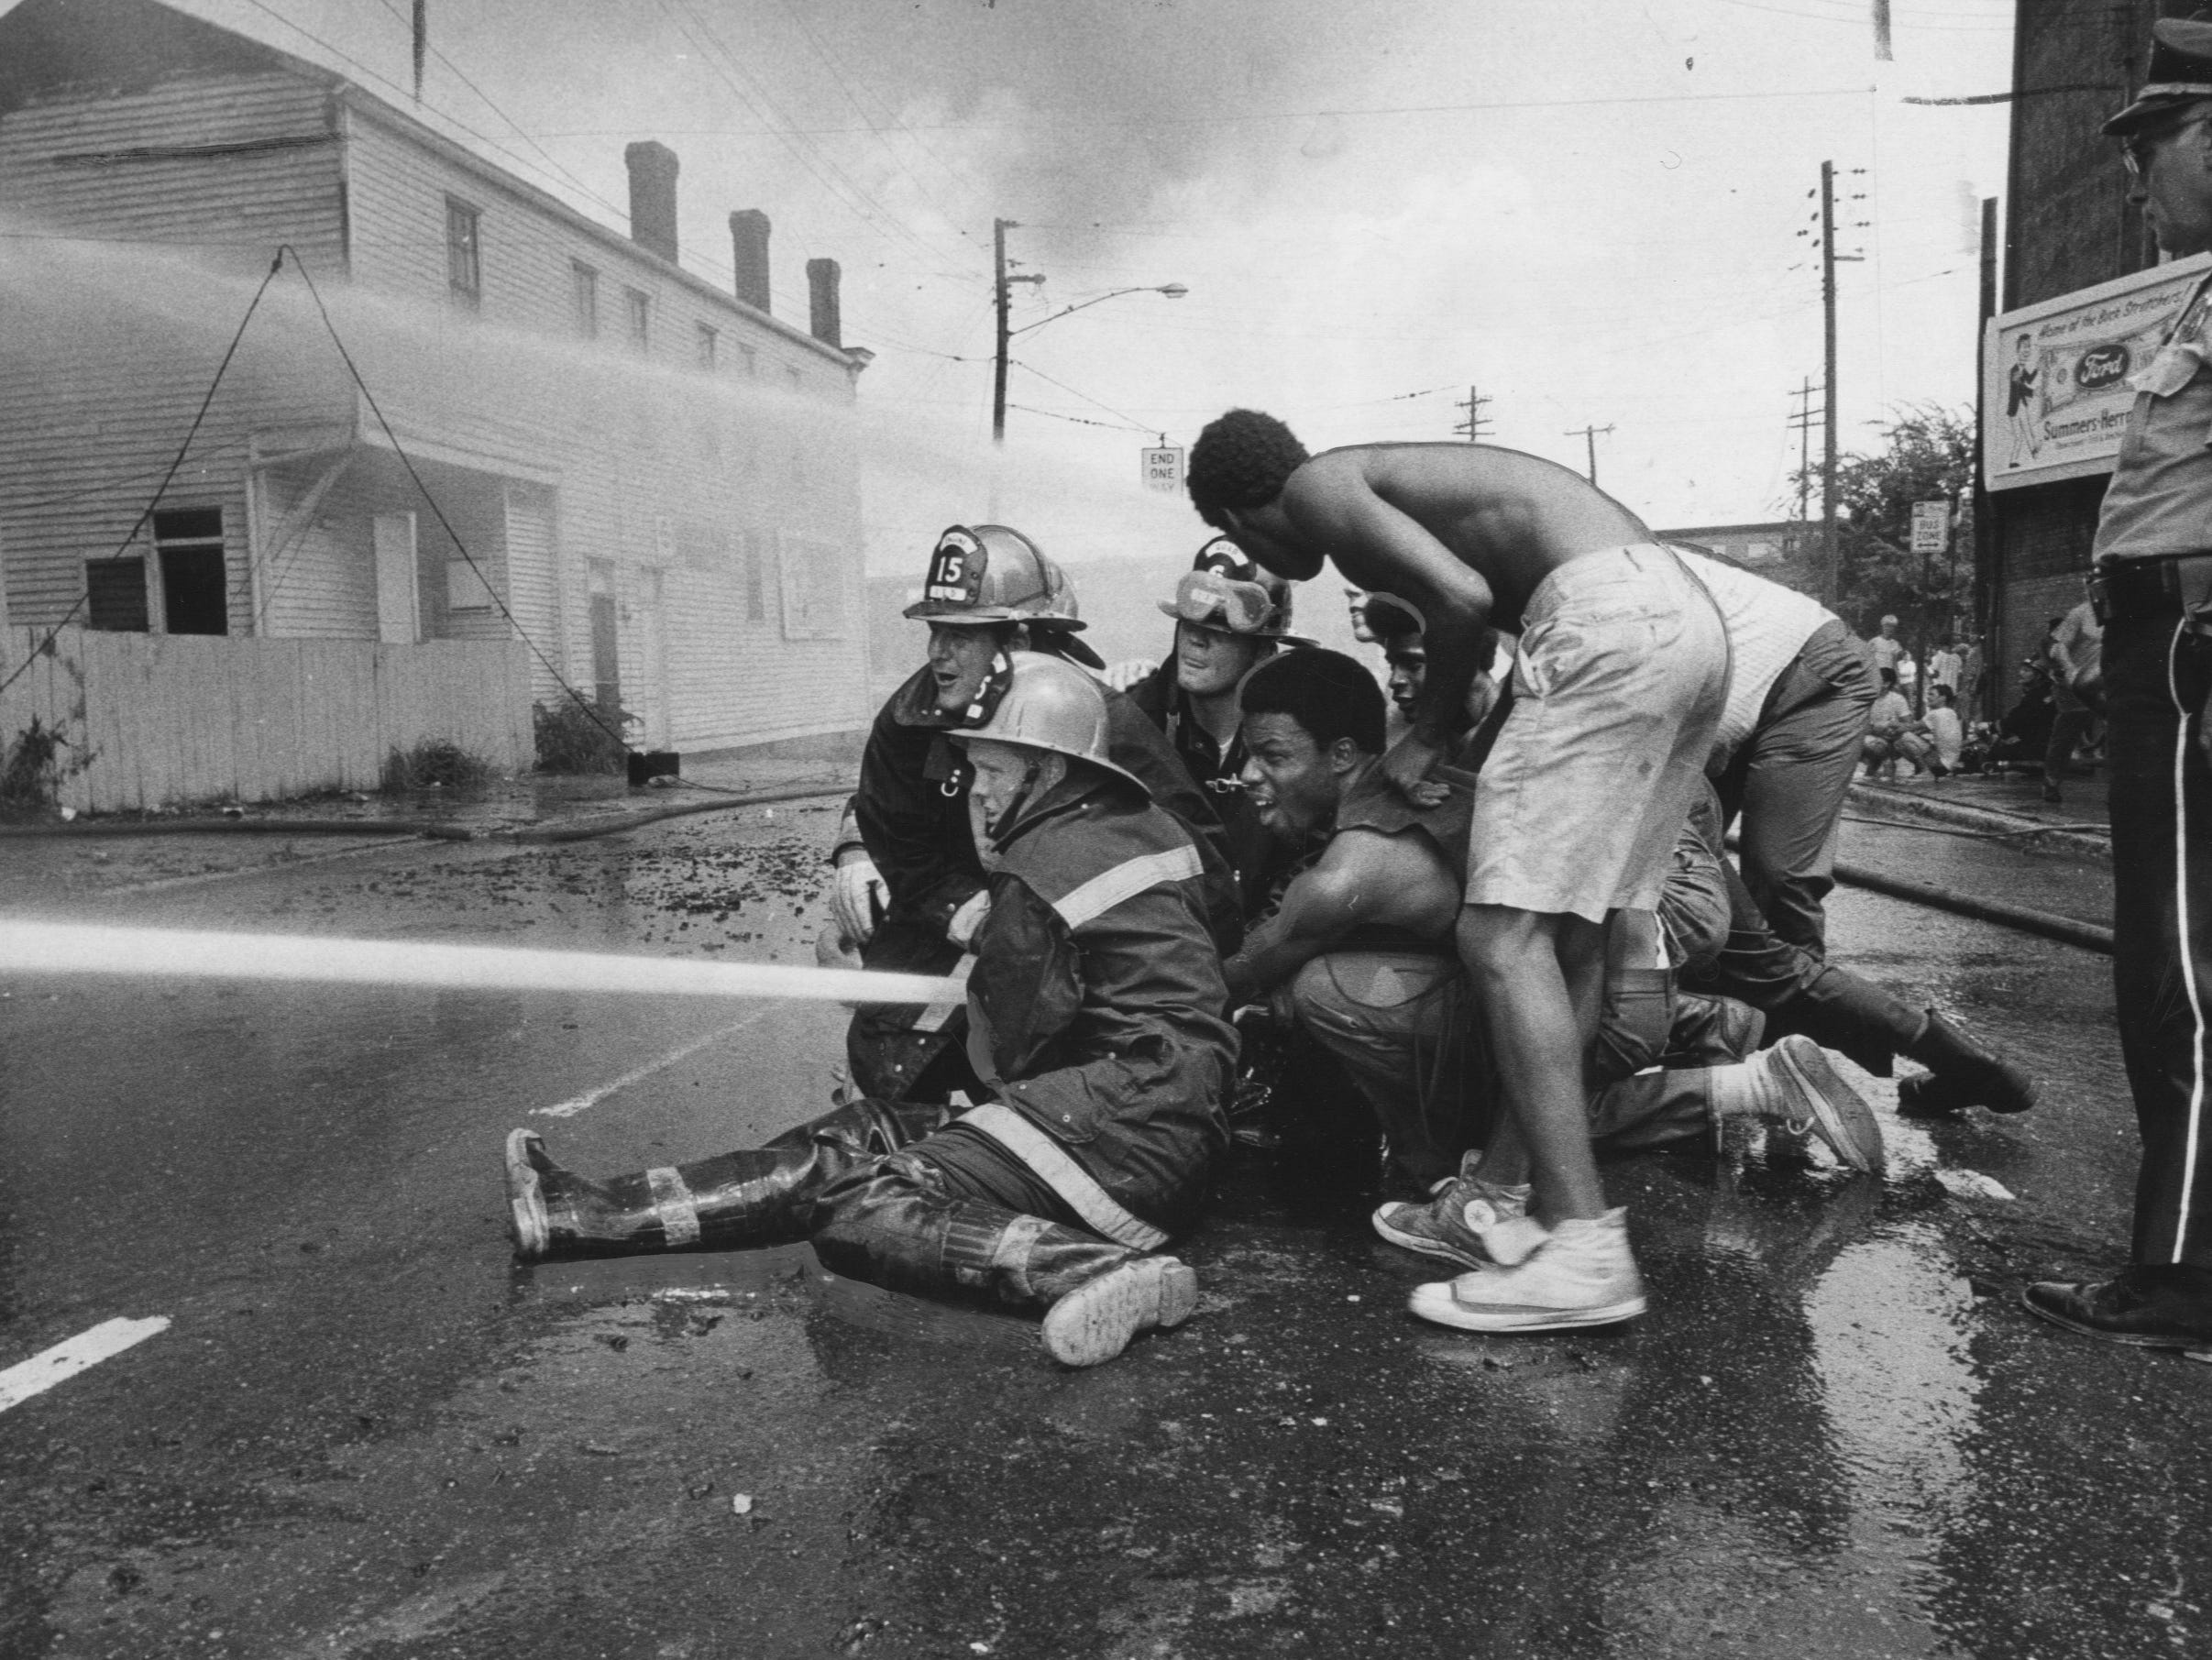 Neighbors at the scene gave fire fighters help in handling the high-pressure hoses used to combat the four-alarm blaze. 